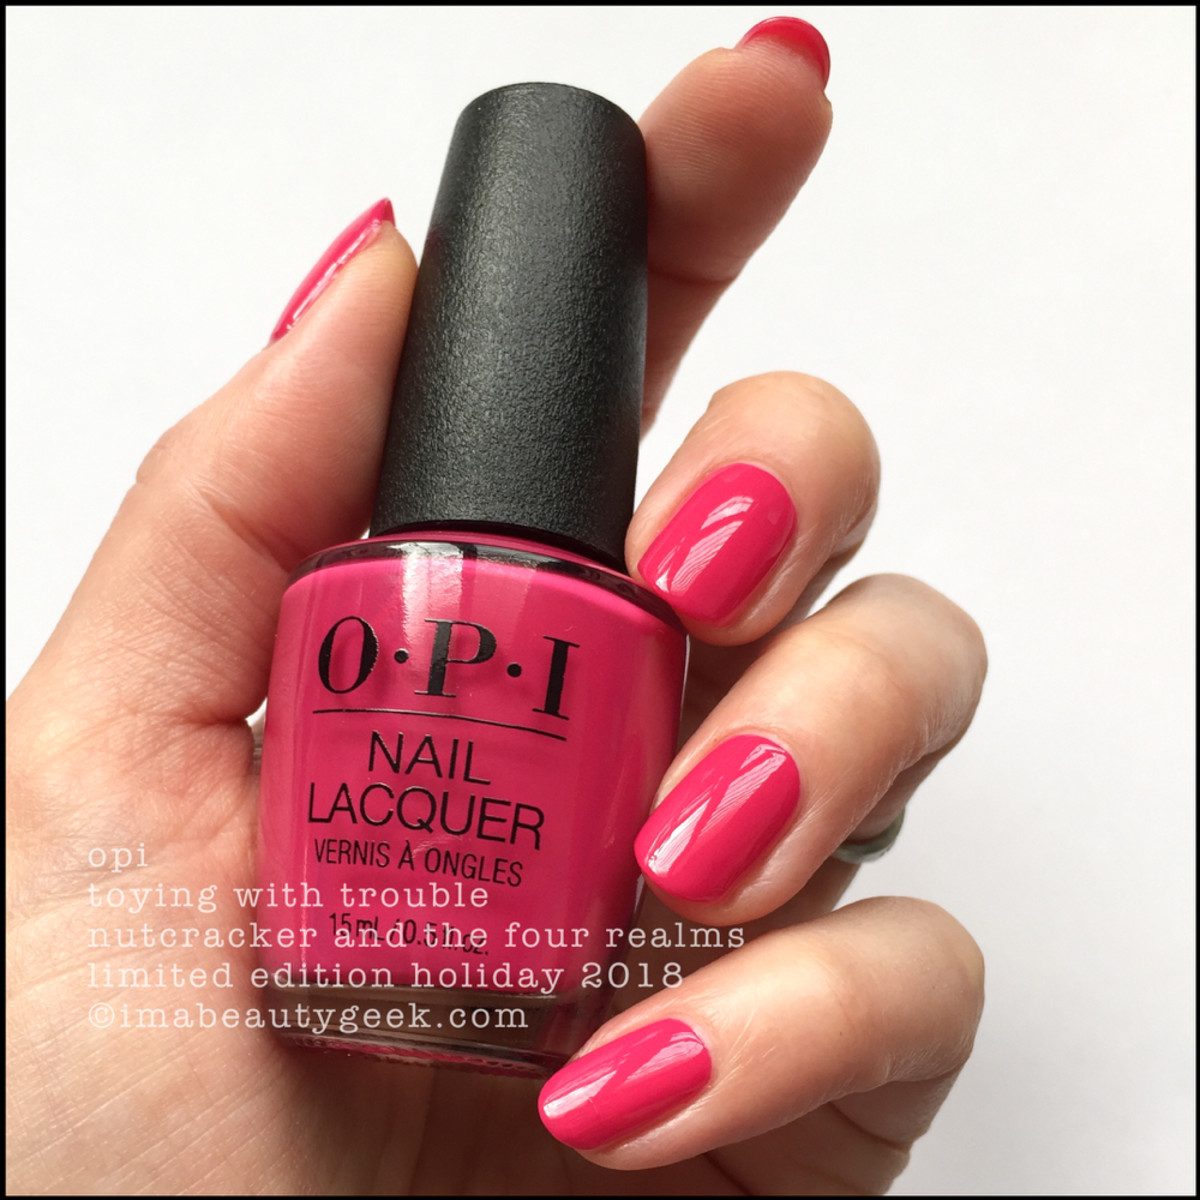 OPI Toying with Trouble - OPI Nutcracker Holiday 2018